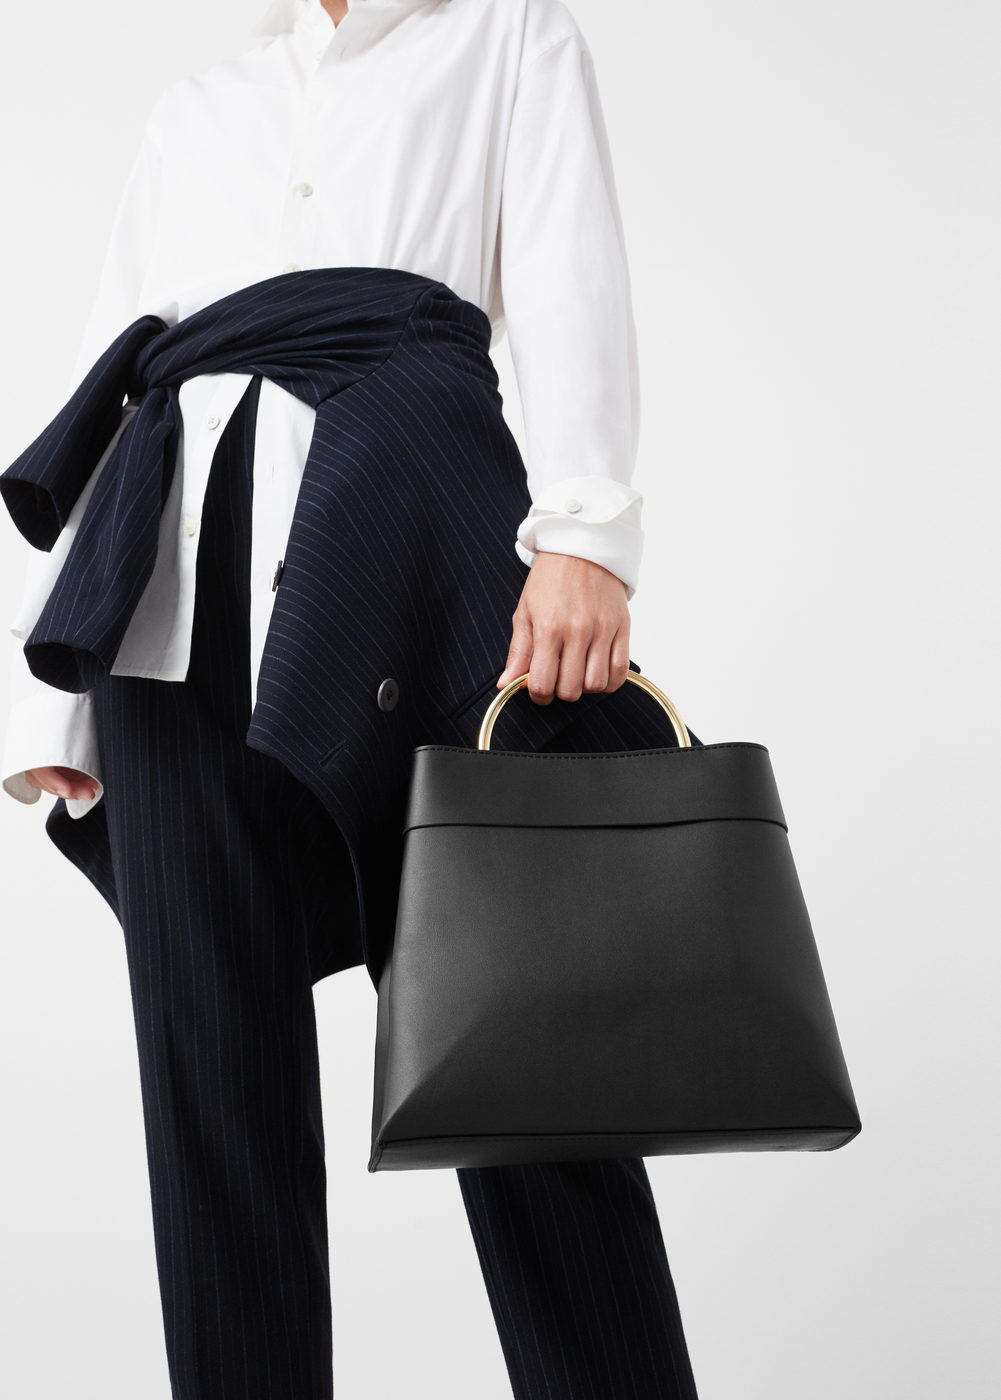 This bag   is so simple, yet so artfully designed. A must have.